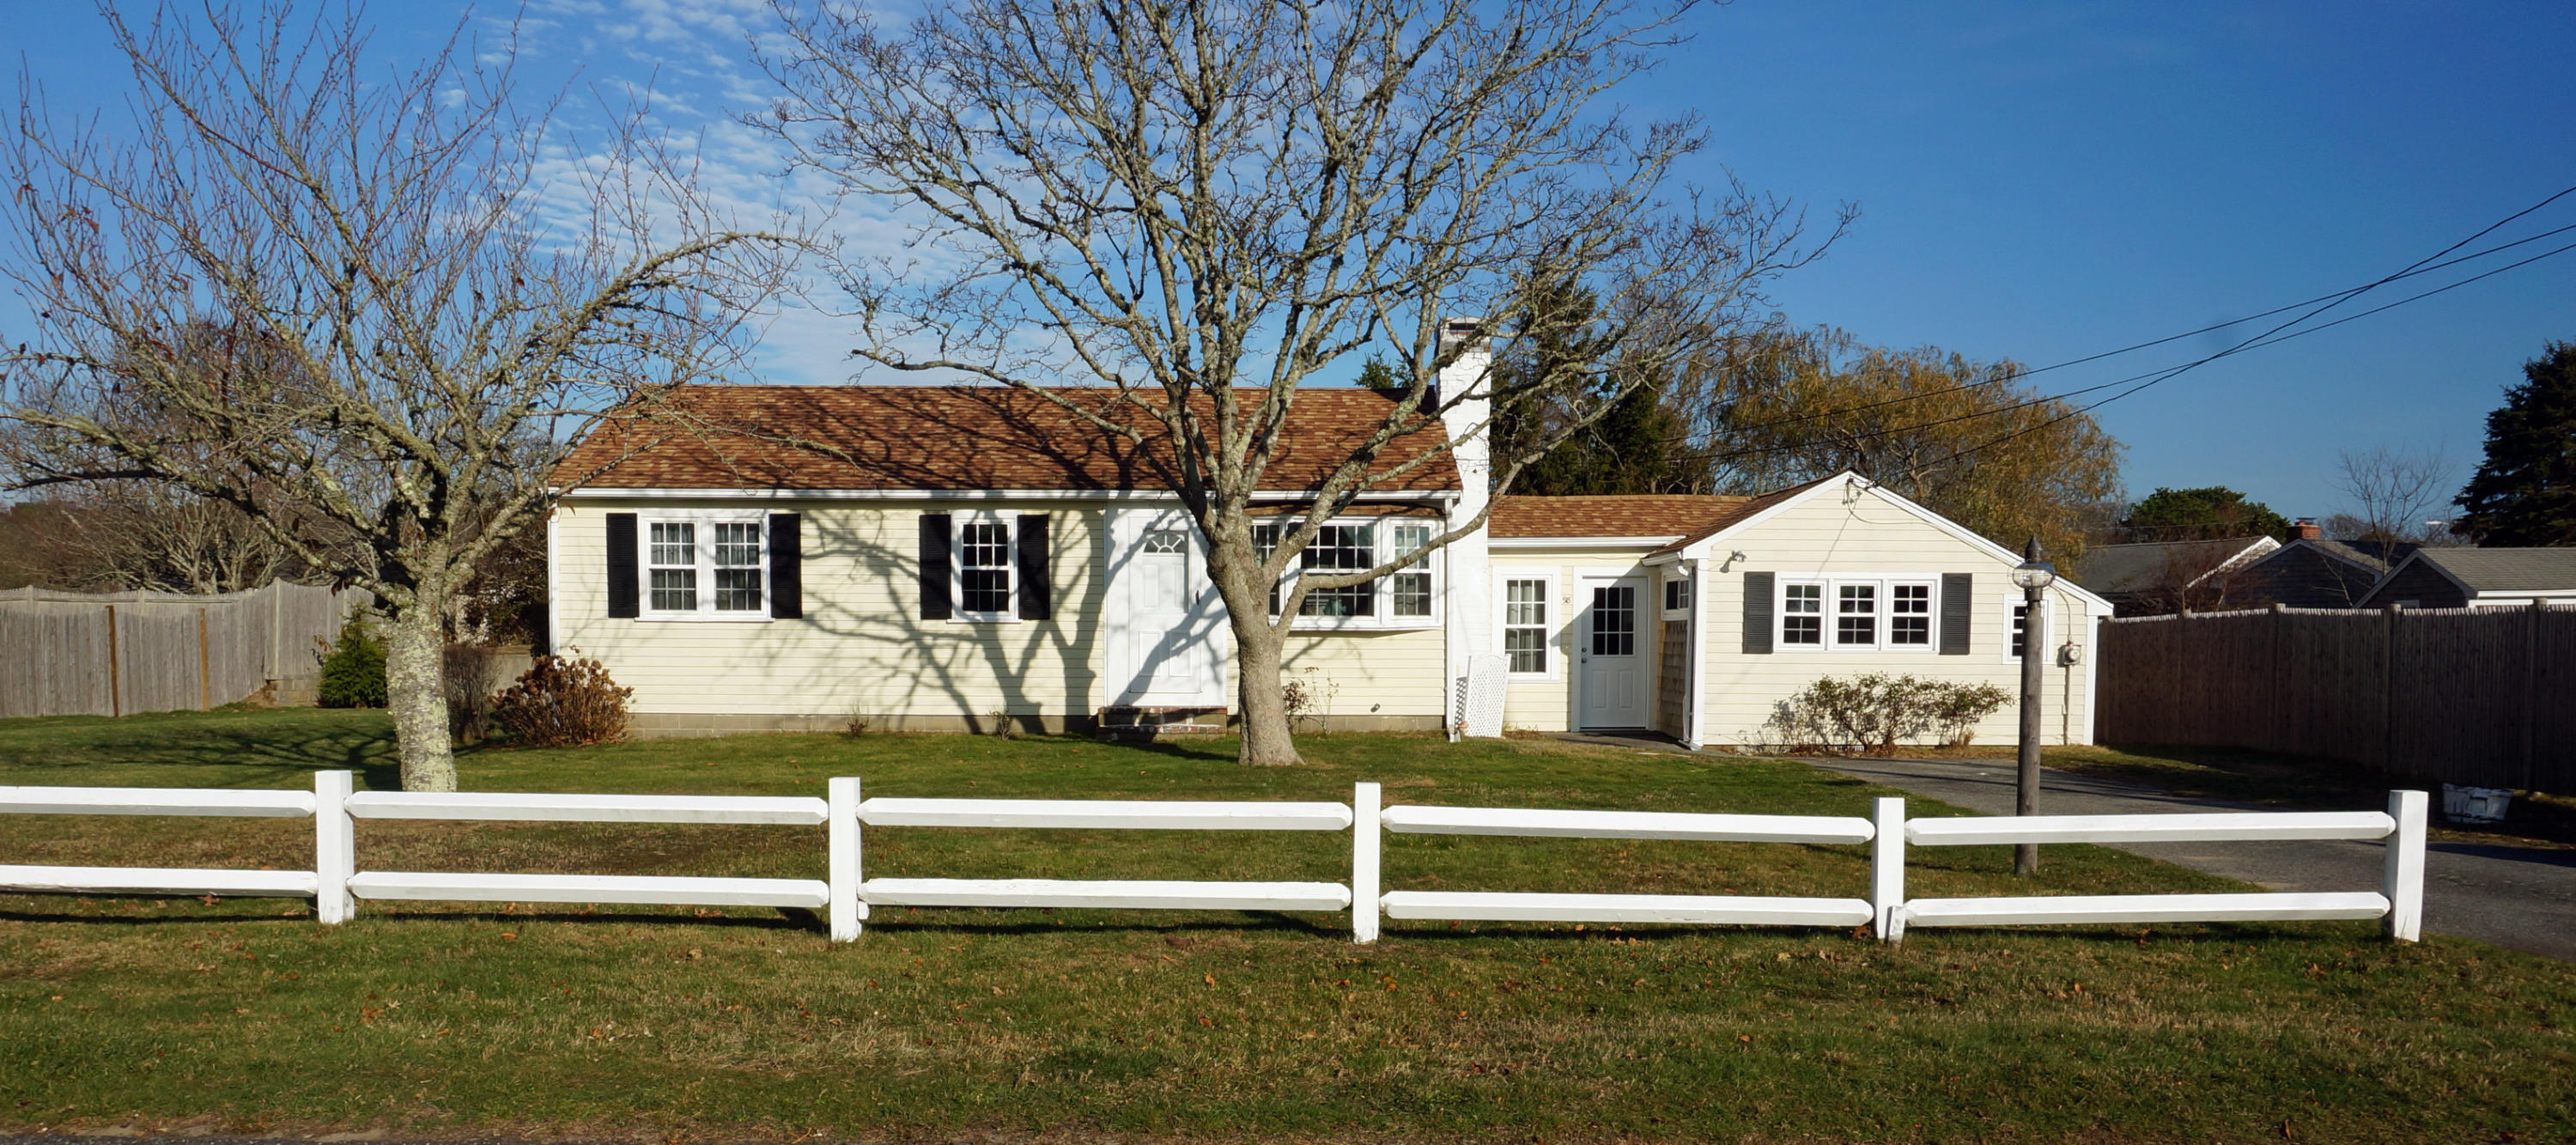 98 Iroquois Boulevard, West Yarmouth MA, 02673 details